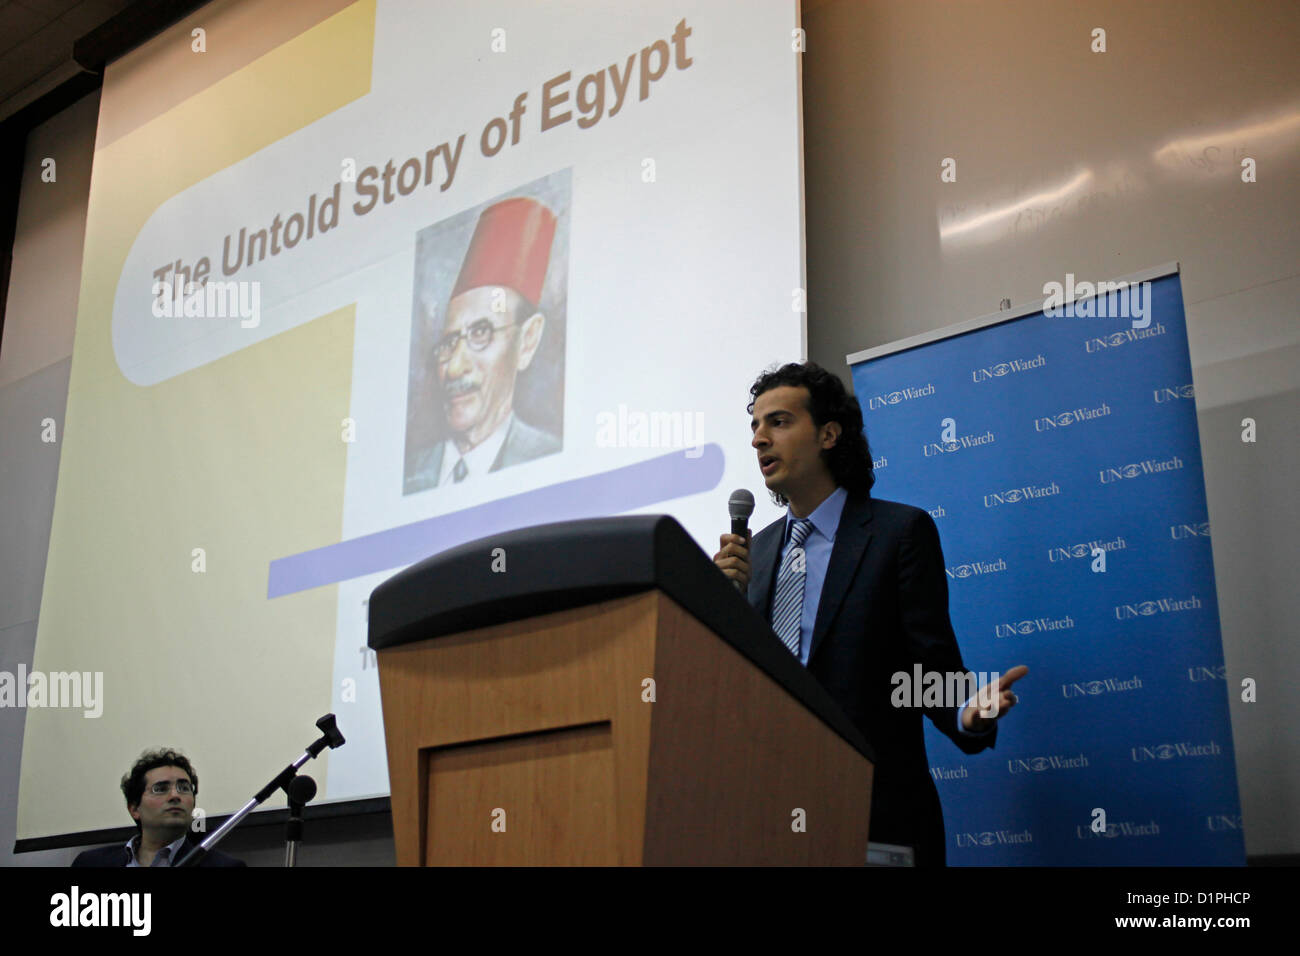 Maikel Nabil Sanad, an Egyptian blogger and activist carrying a speech in Tel Aviv University on 02 January 2012. Stock Photo